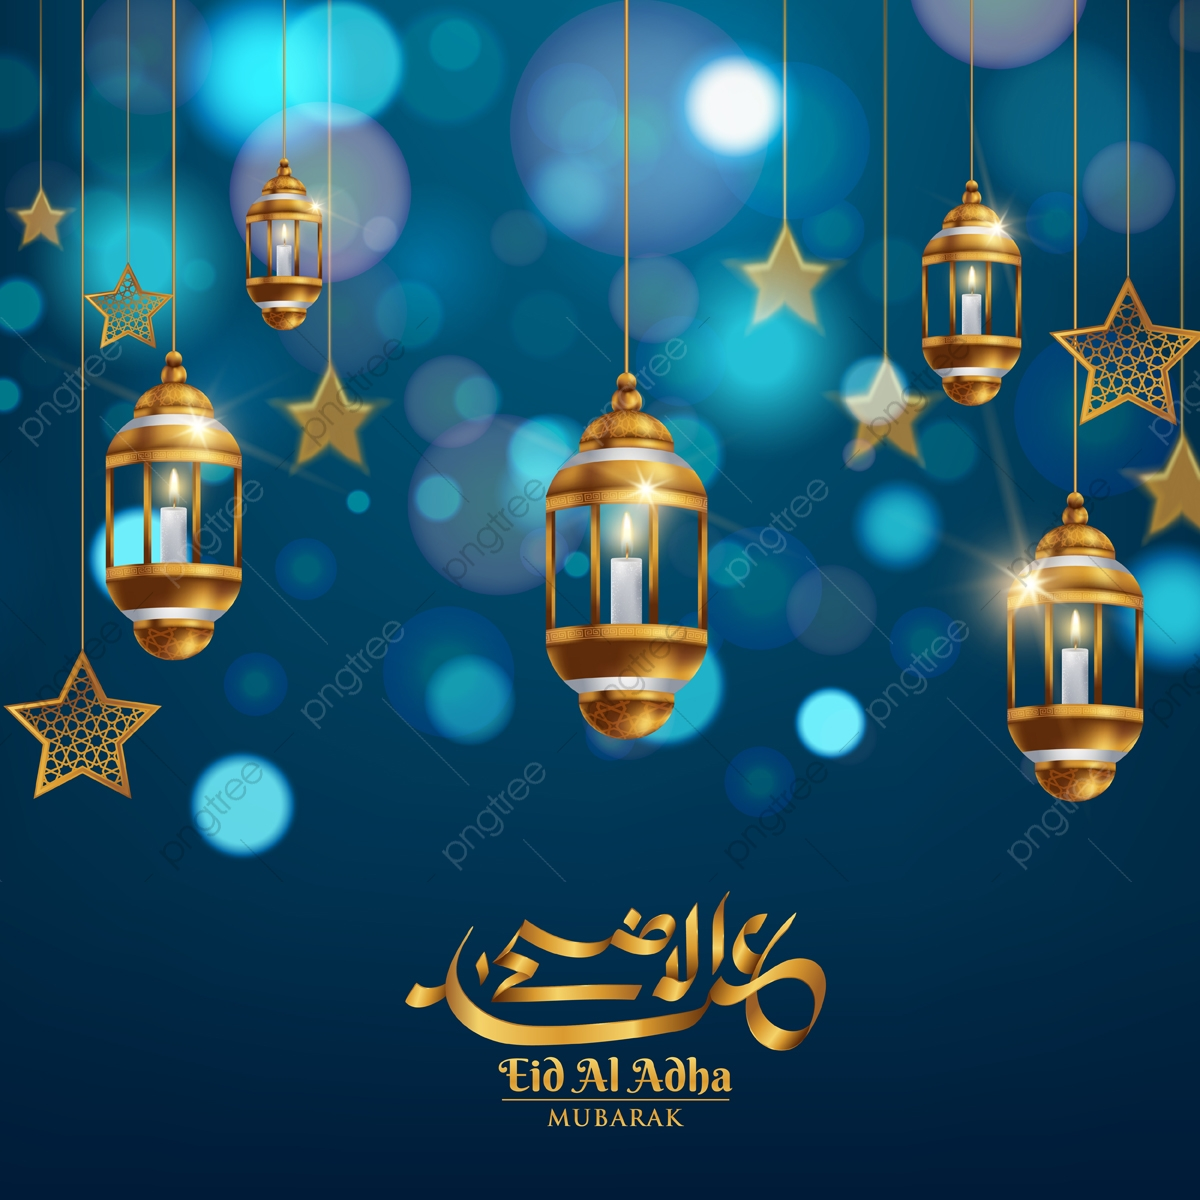 eid vector png free eid al fitr eid mubarak words eid al adha vector images pngtree https pngtree com freepng eid al adha cover 3594093 html